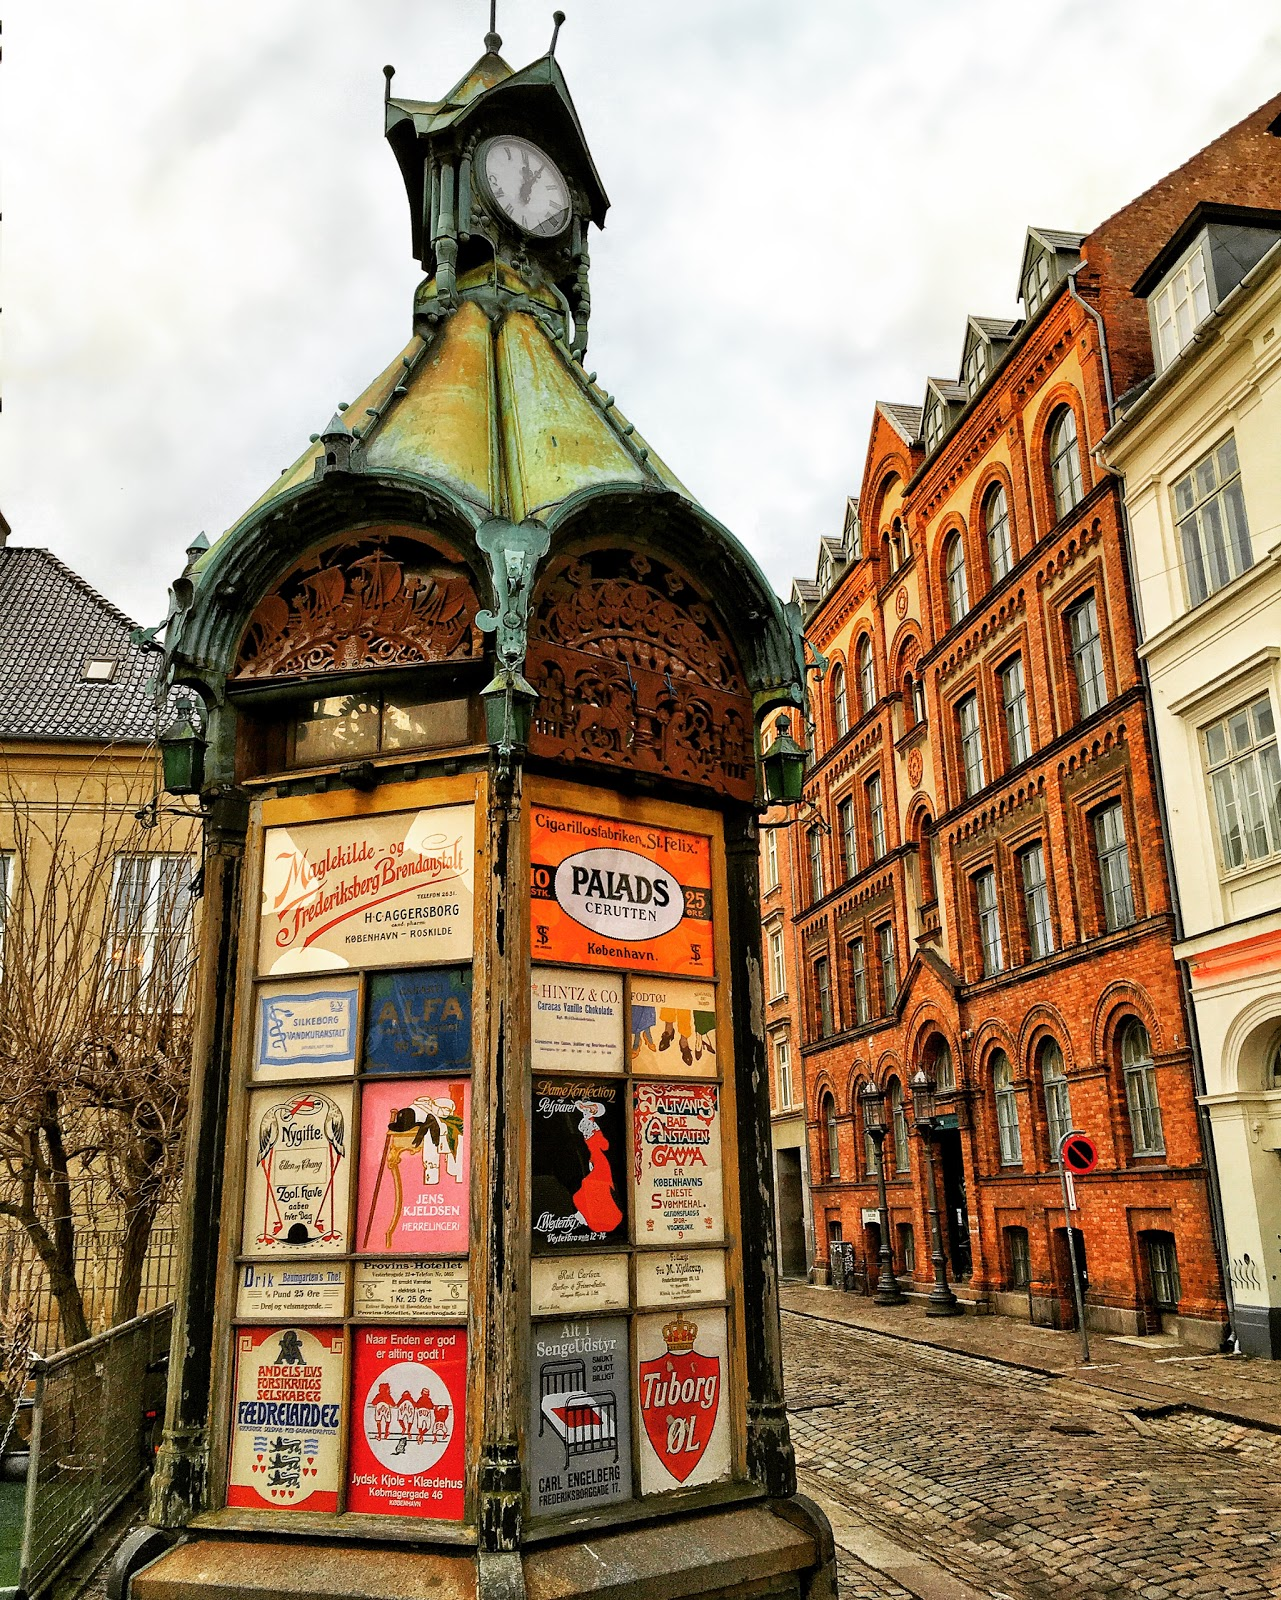 11 telephone kiosks in copenhagen forge iron details old cast iron this beautiful telephone kiosk telefonkiosk in copenhagen is from 1896 it is located on vesterbros torv in copenhagen old posters from the 1930s gives biocorpaavc Images